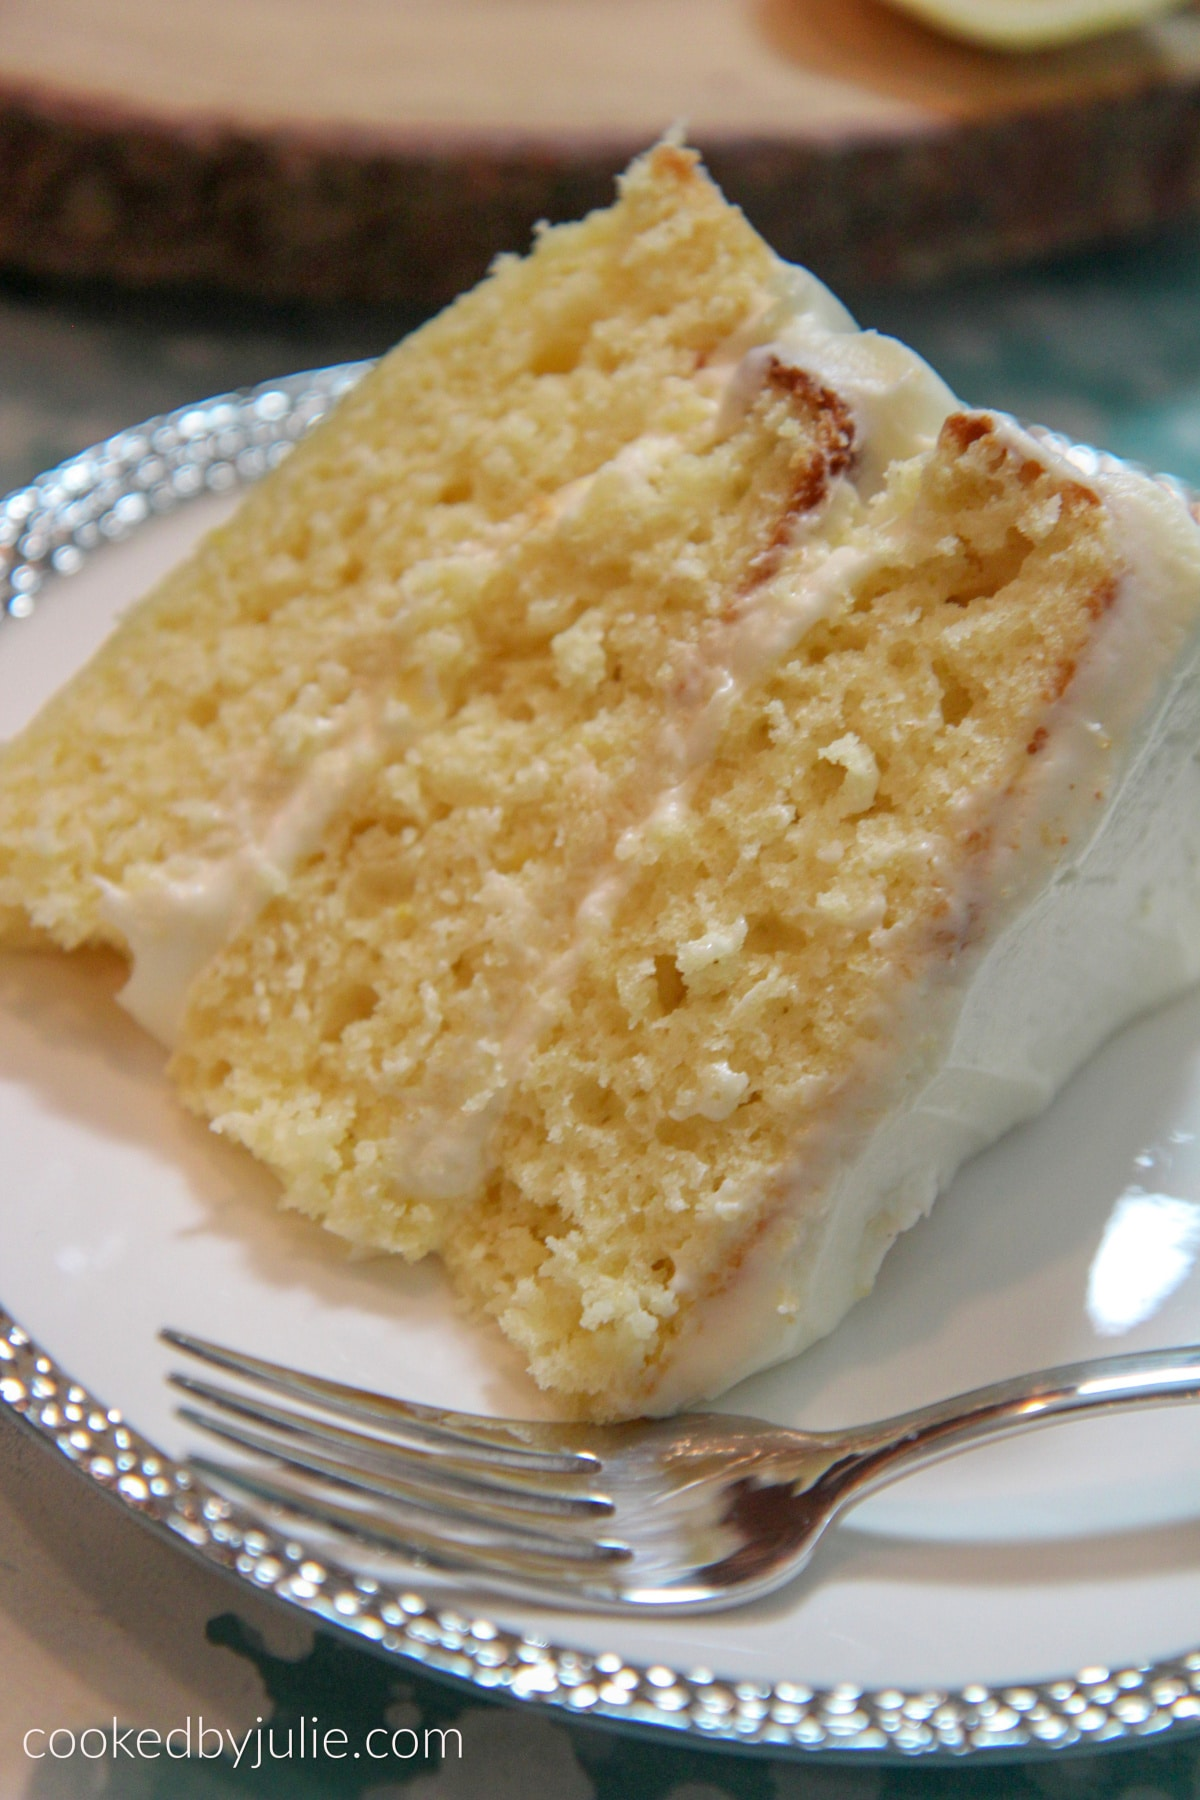 a three layer lemon cake slice on a white and sliver plate with a fork on the side.